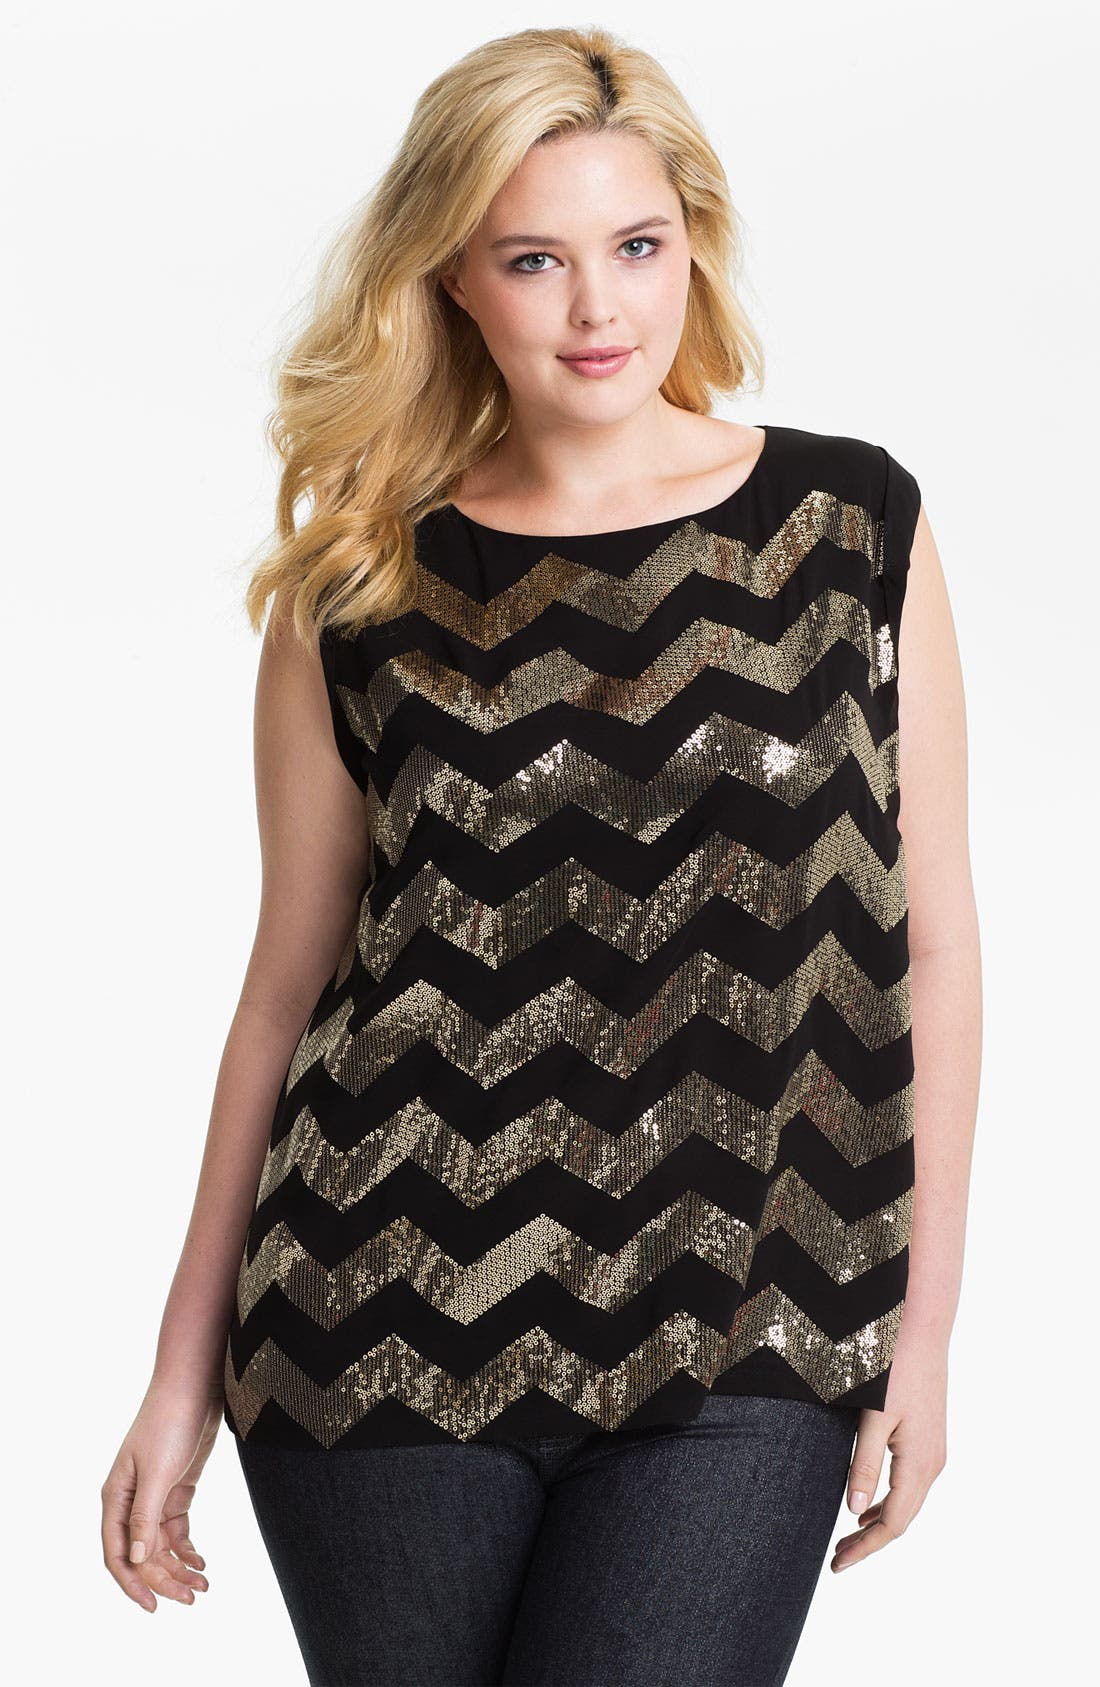 Alternate Image 1 Selected - Vince Camuto Sequin Chevron Blouse (Plus)